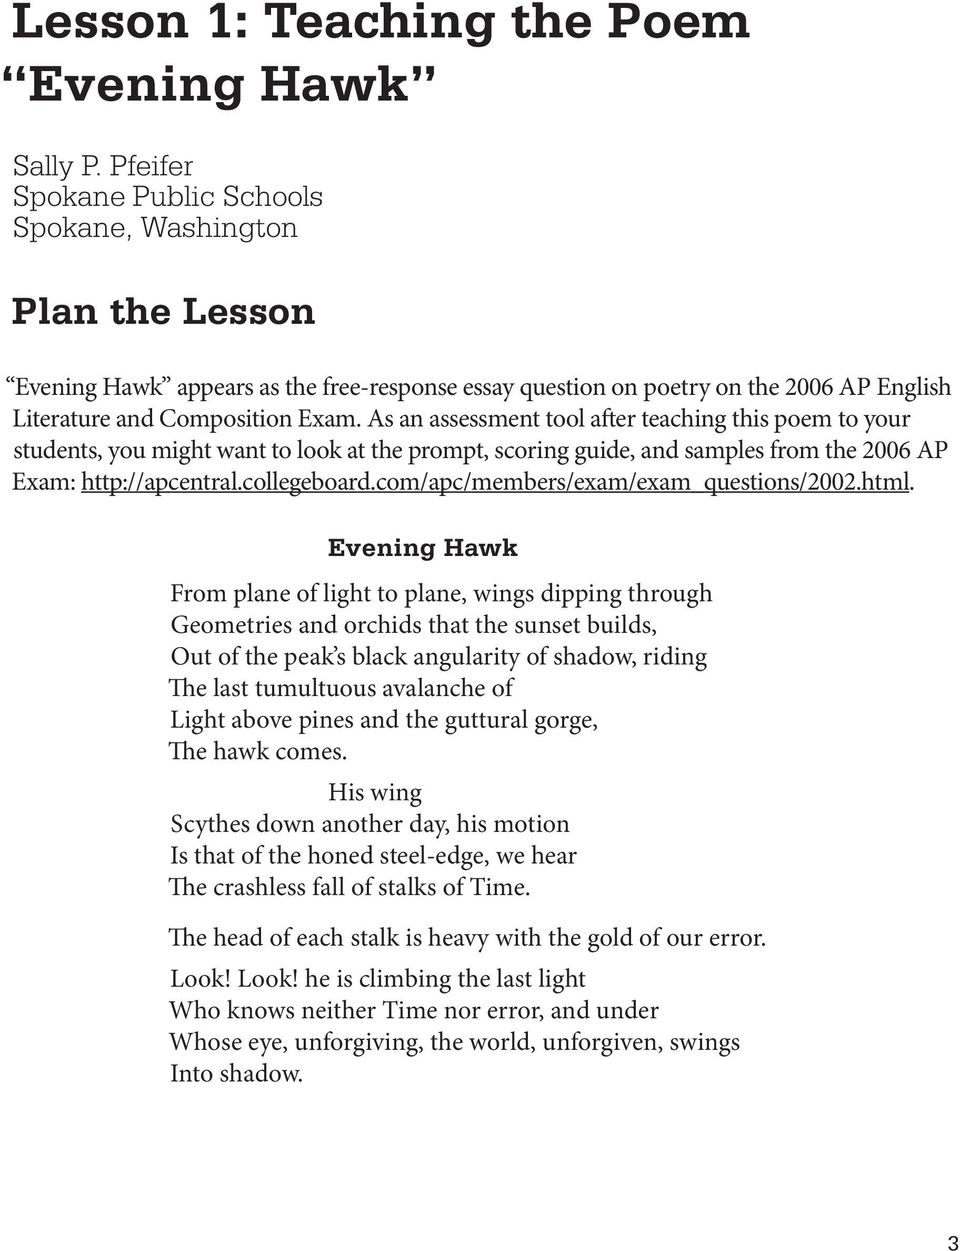 As an assessment tool after teaching this poem to your students, you might want to look at the prompt, scoring guide, and samples from the 2006 AP Exam: http://apcentral.collegeboard.